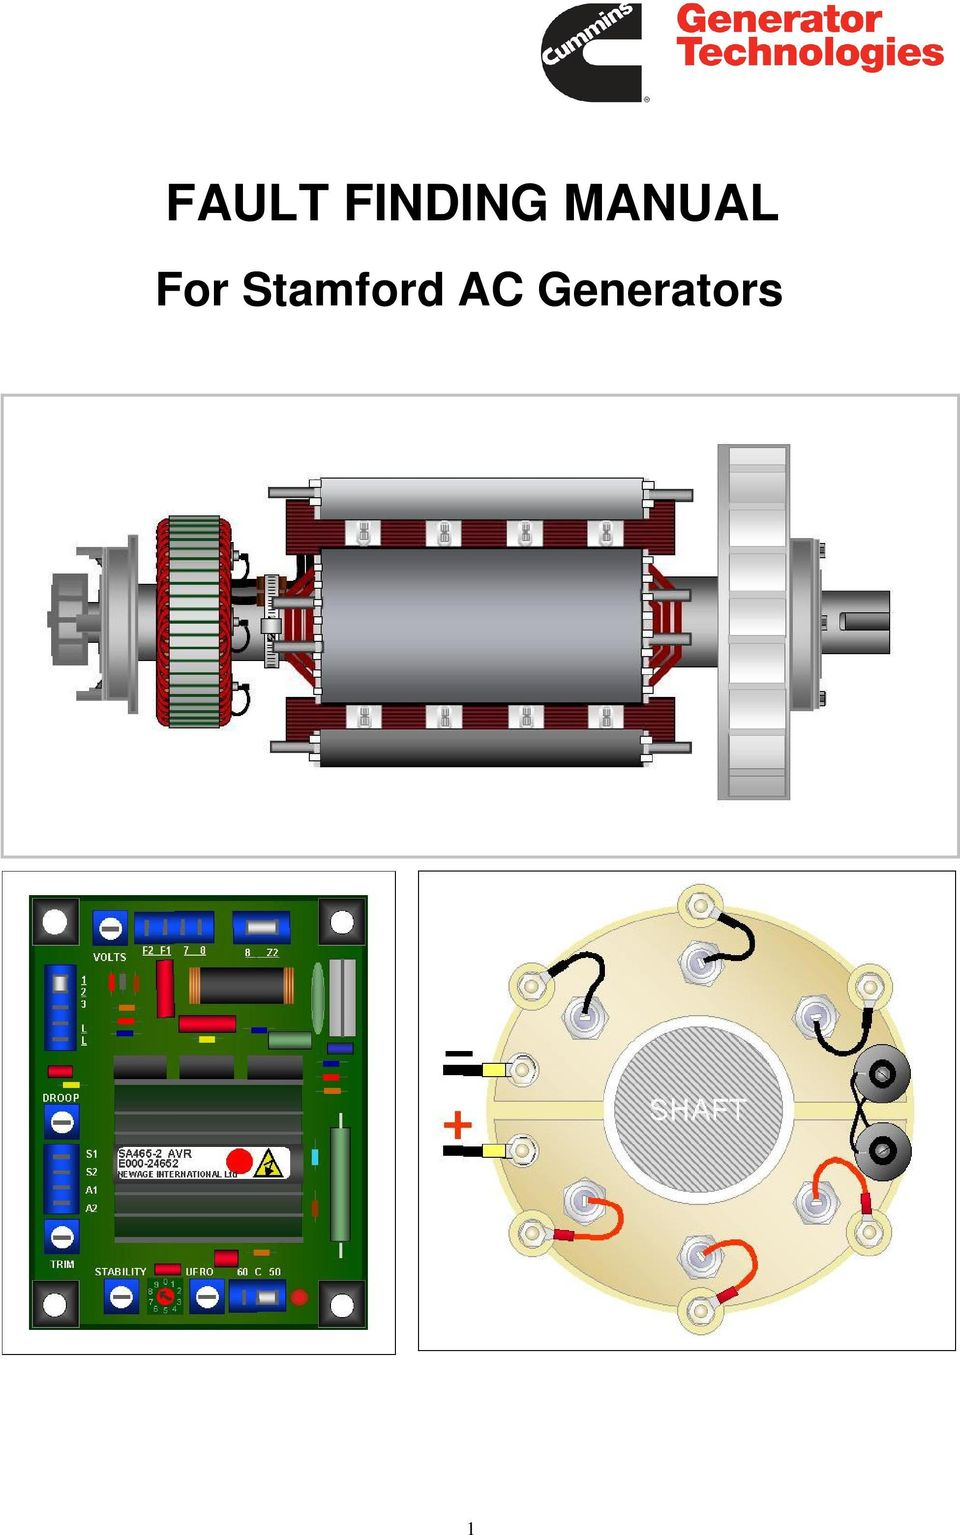 fault finding manual for stamford ac generators pdf Newage Stamford Alternator Wiring Diagram wiring diagram stamford alternator save